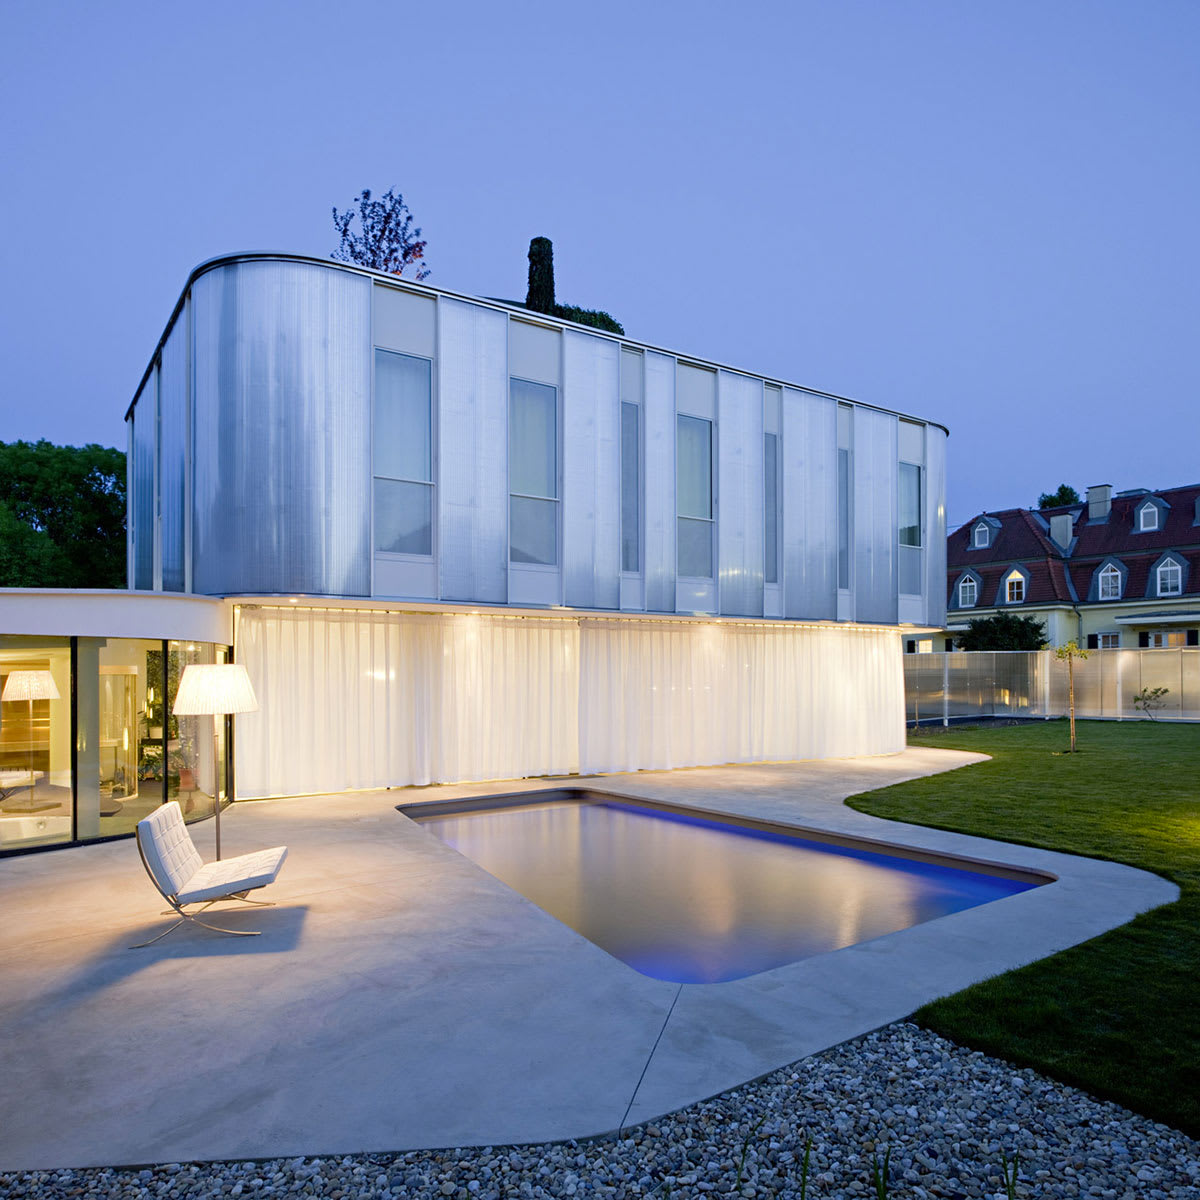 Caramel architekten hertha hurnaus house 500m living - Caramel architekten ...